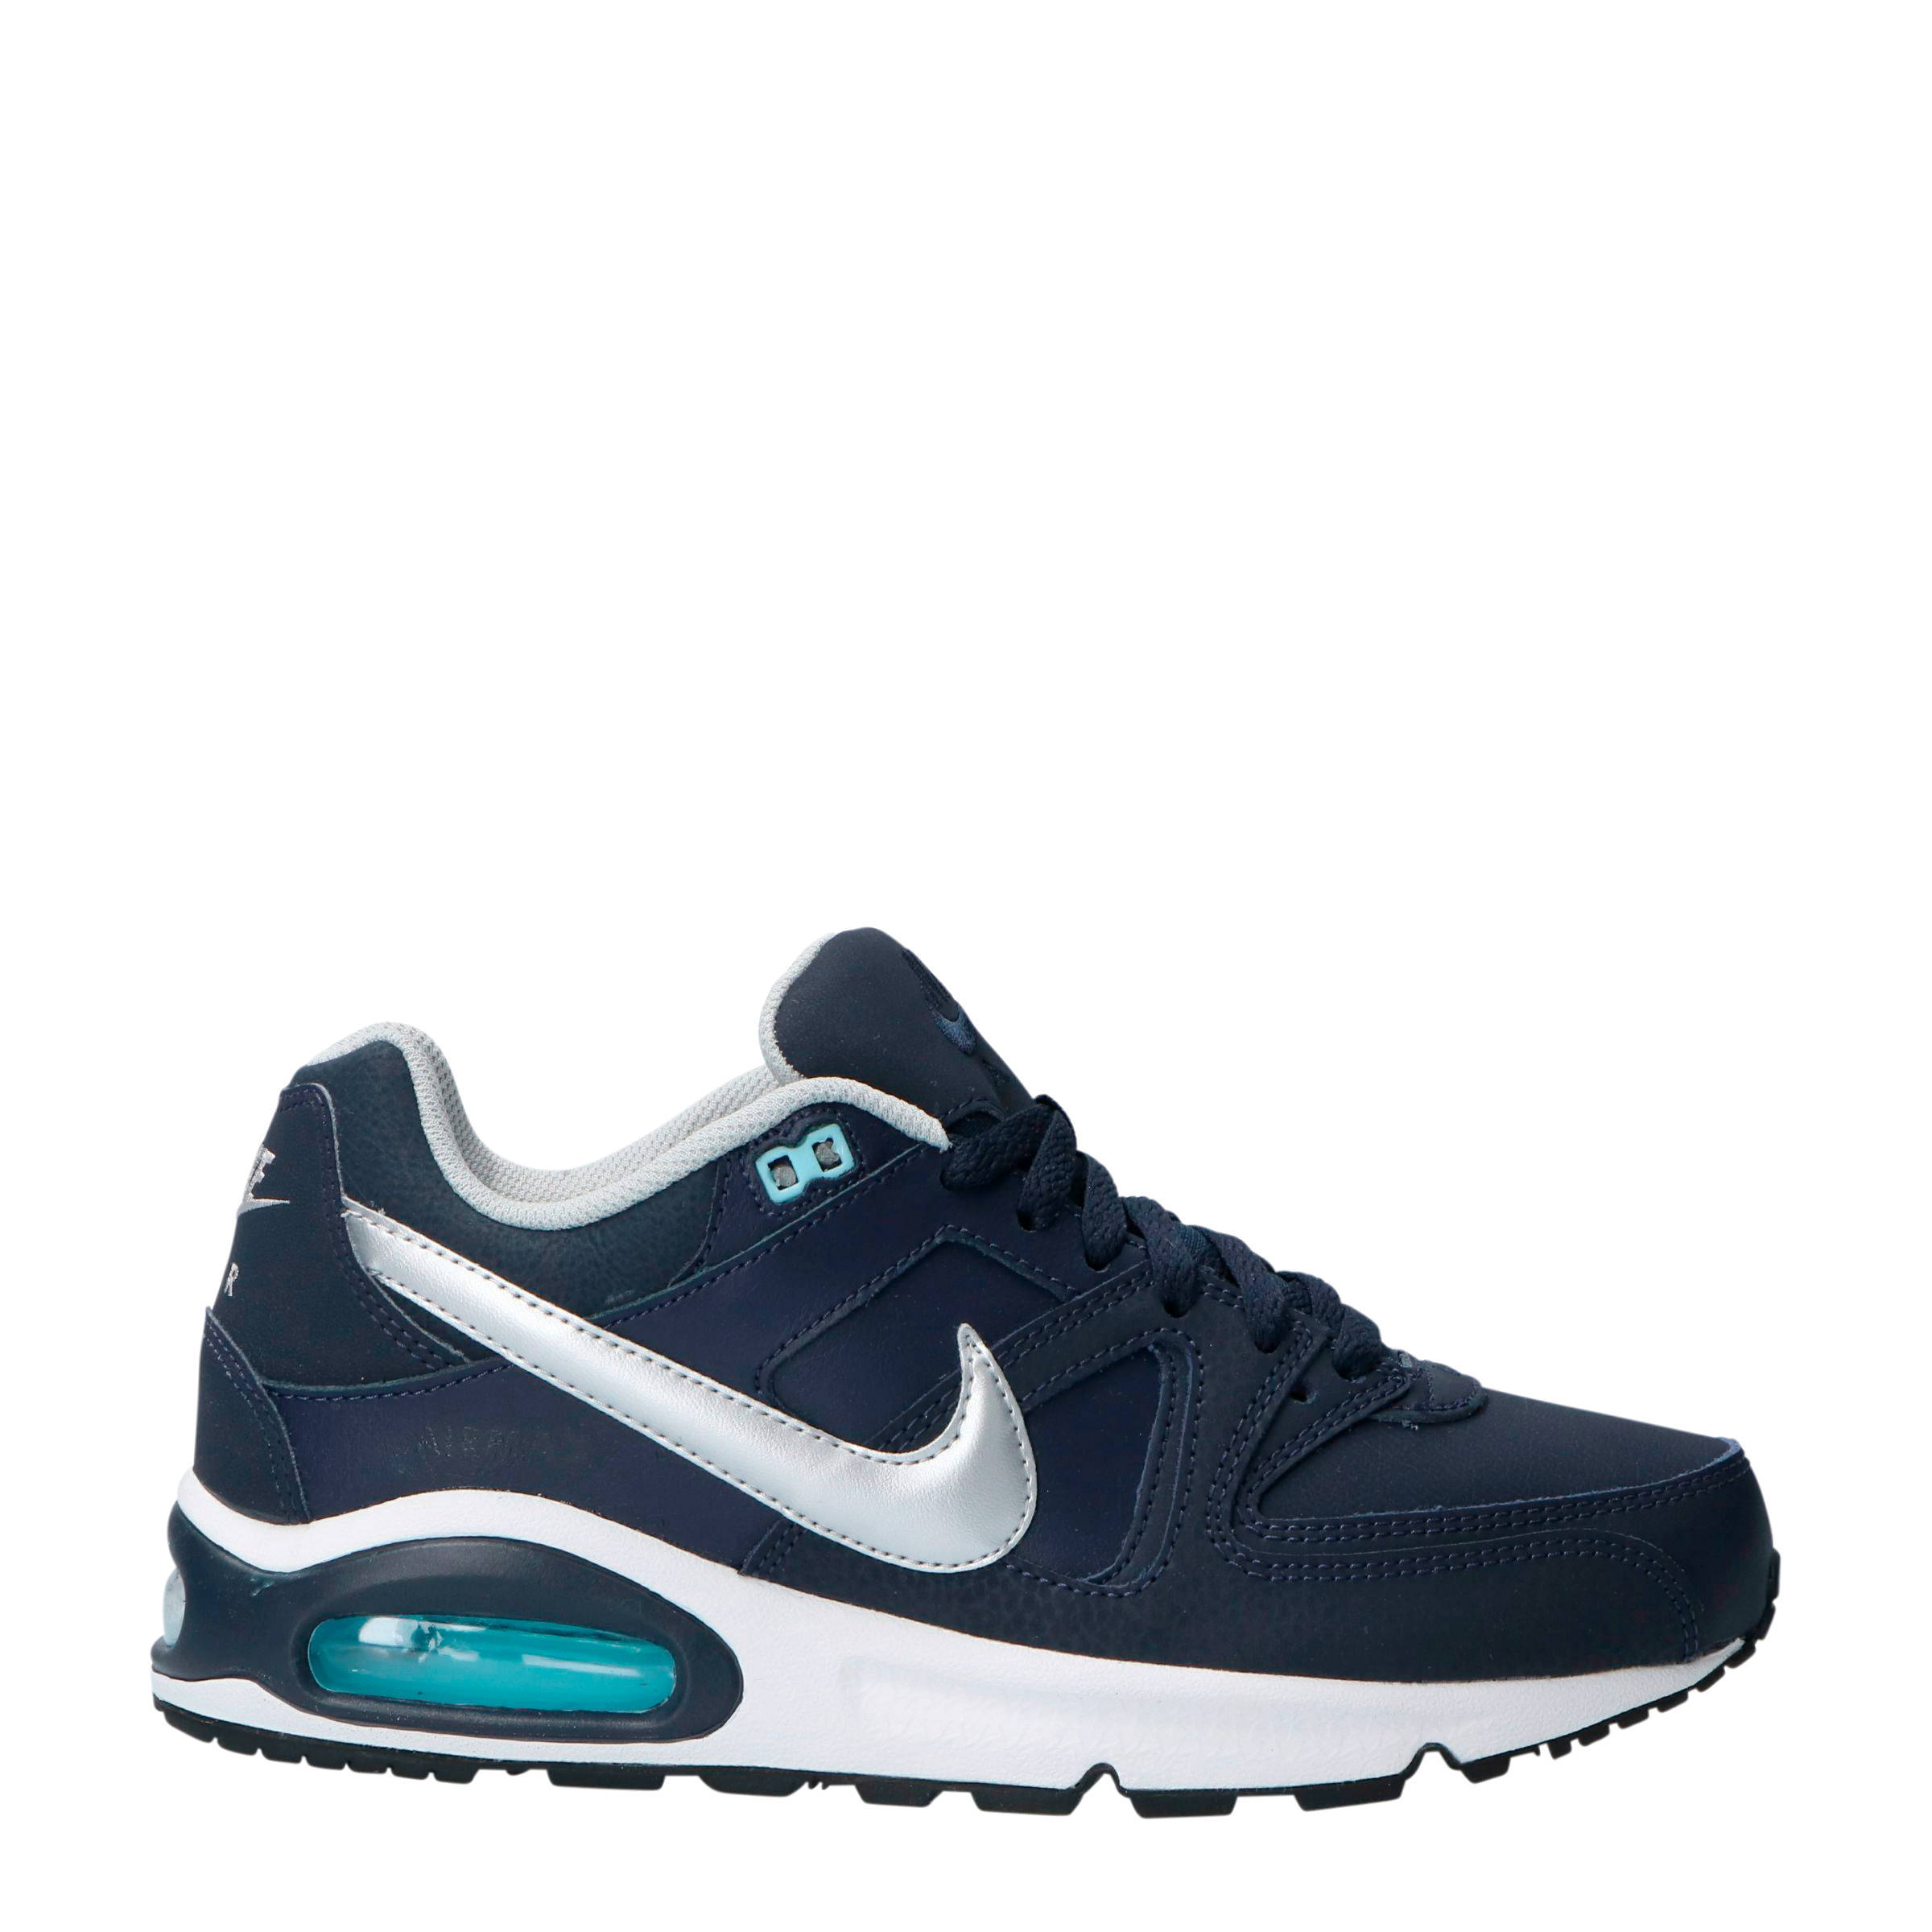 Air Max Command Leather sneakers blauw/zilver